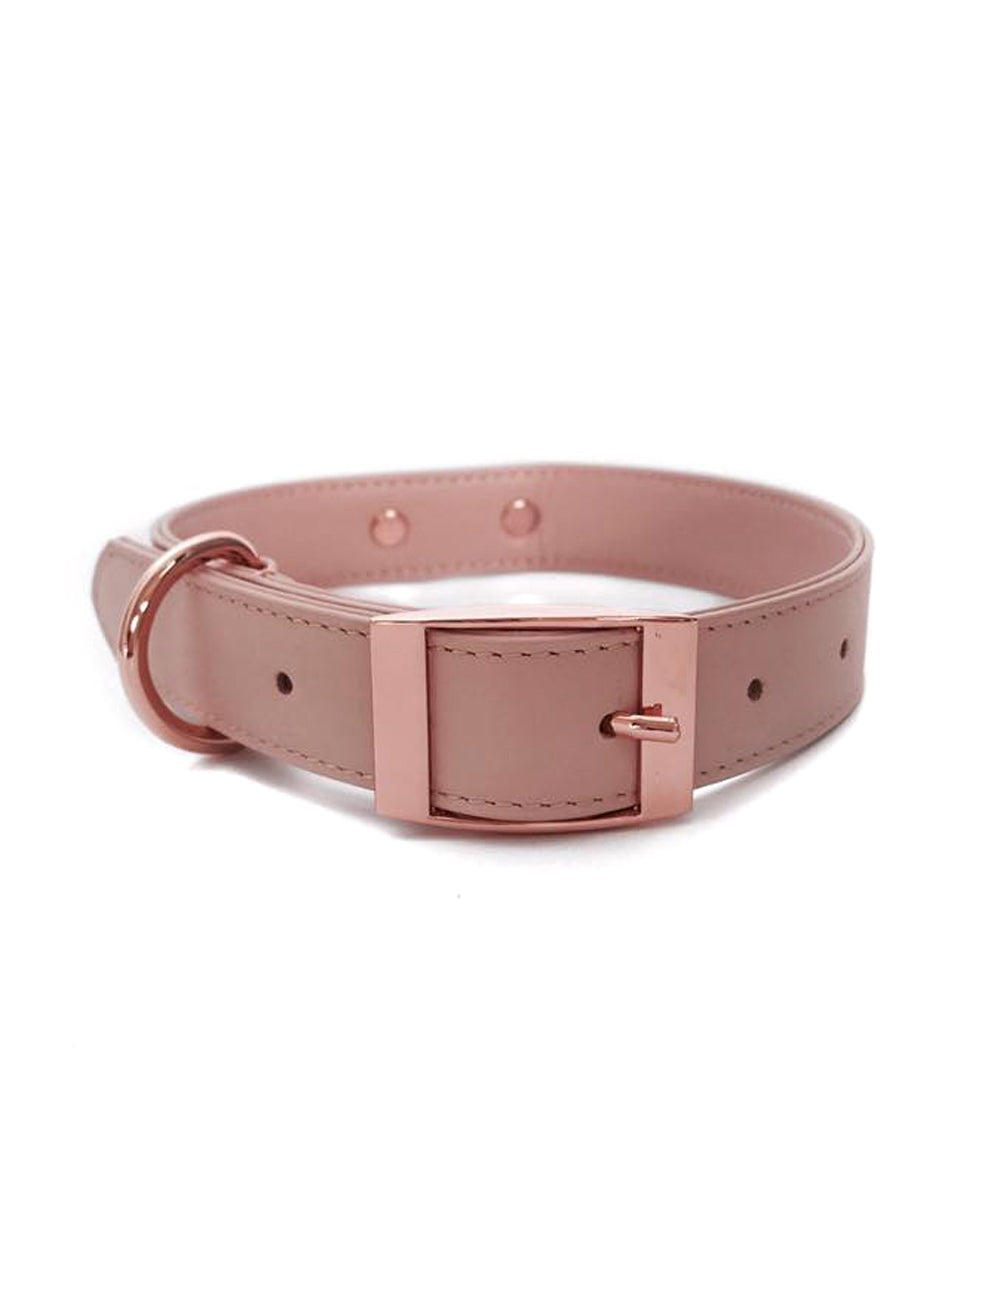 Rose Leather Collar | Rose Blush